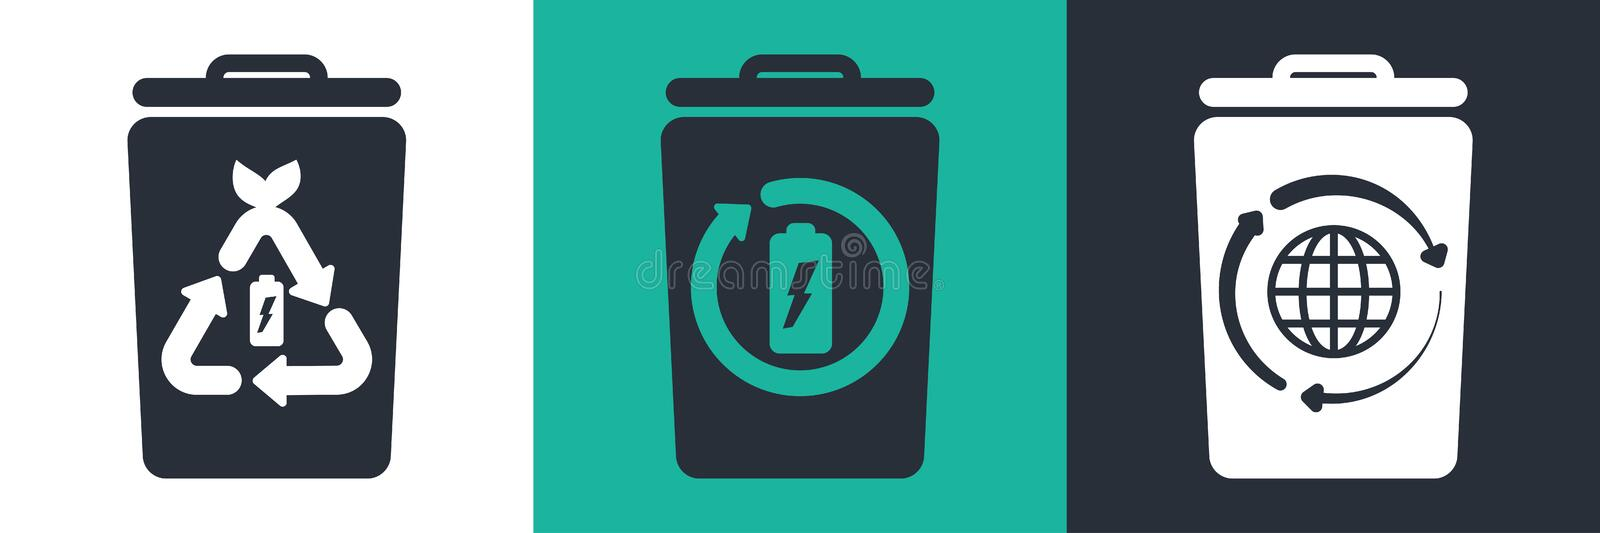 Trash bin flat elements with battery recycling vector illustration